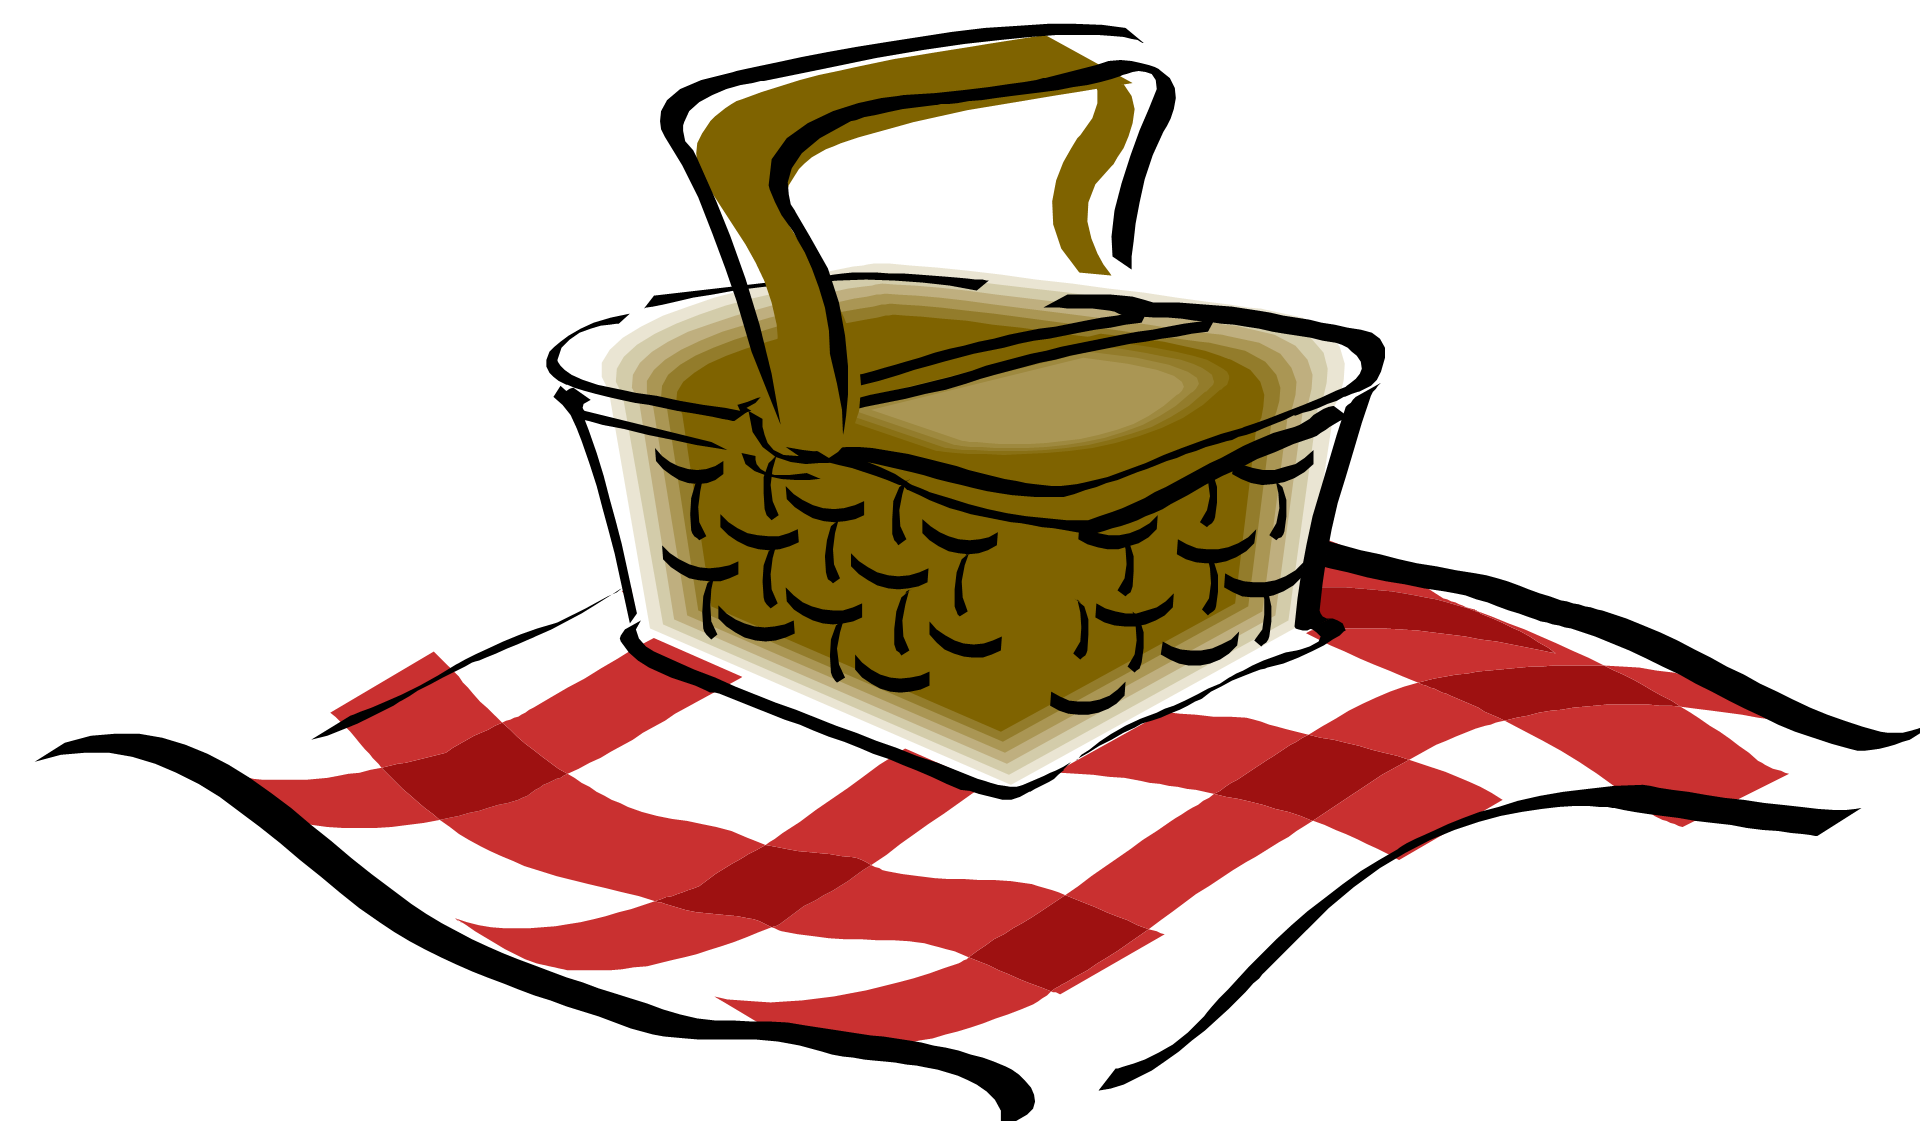 Picnic clipart #1, Download drawings